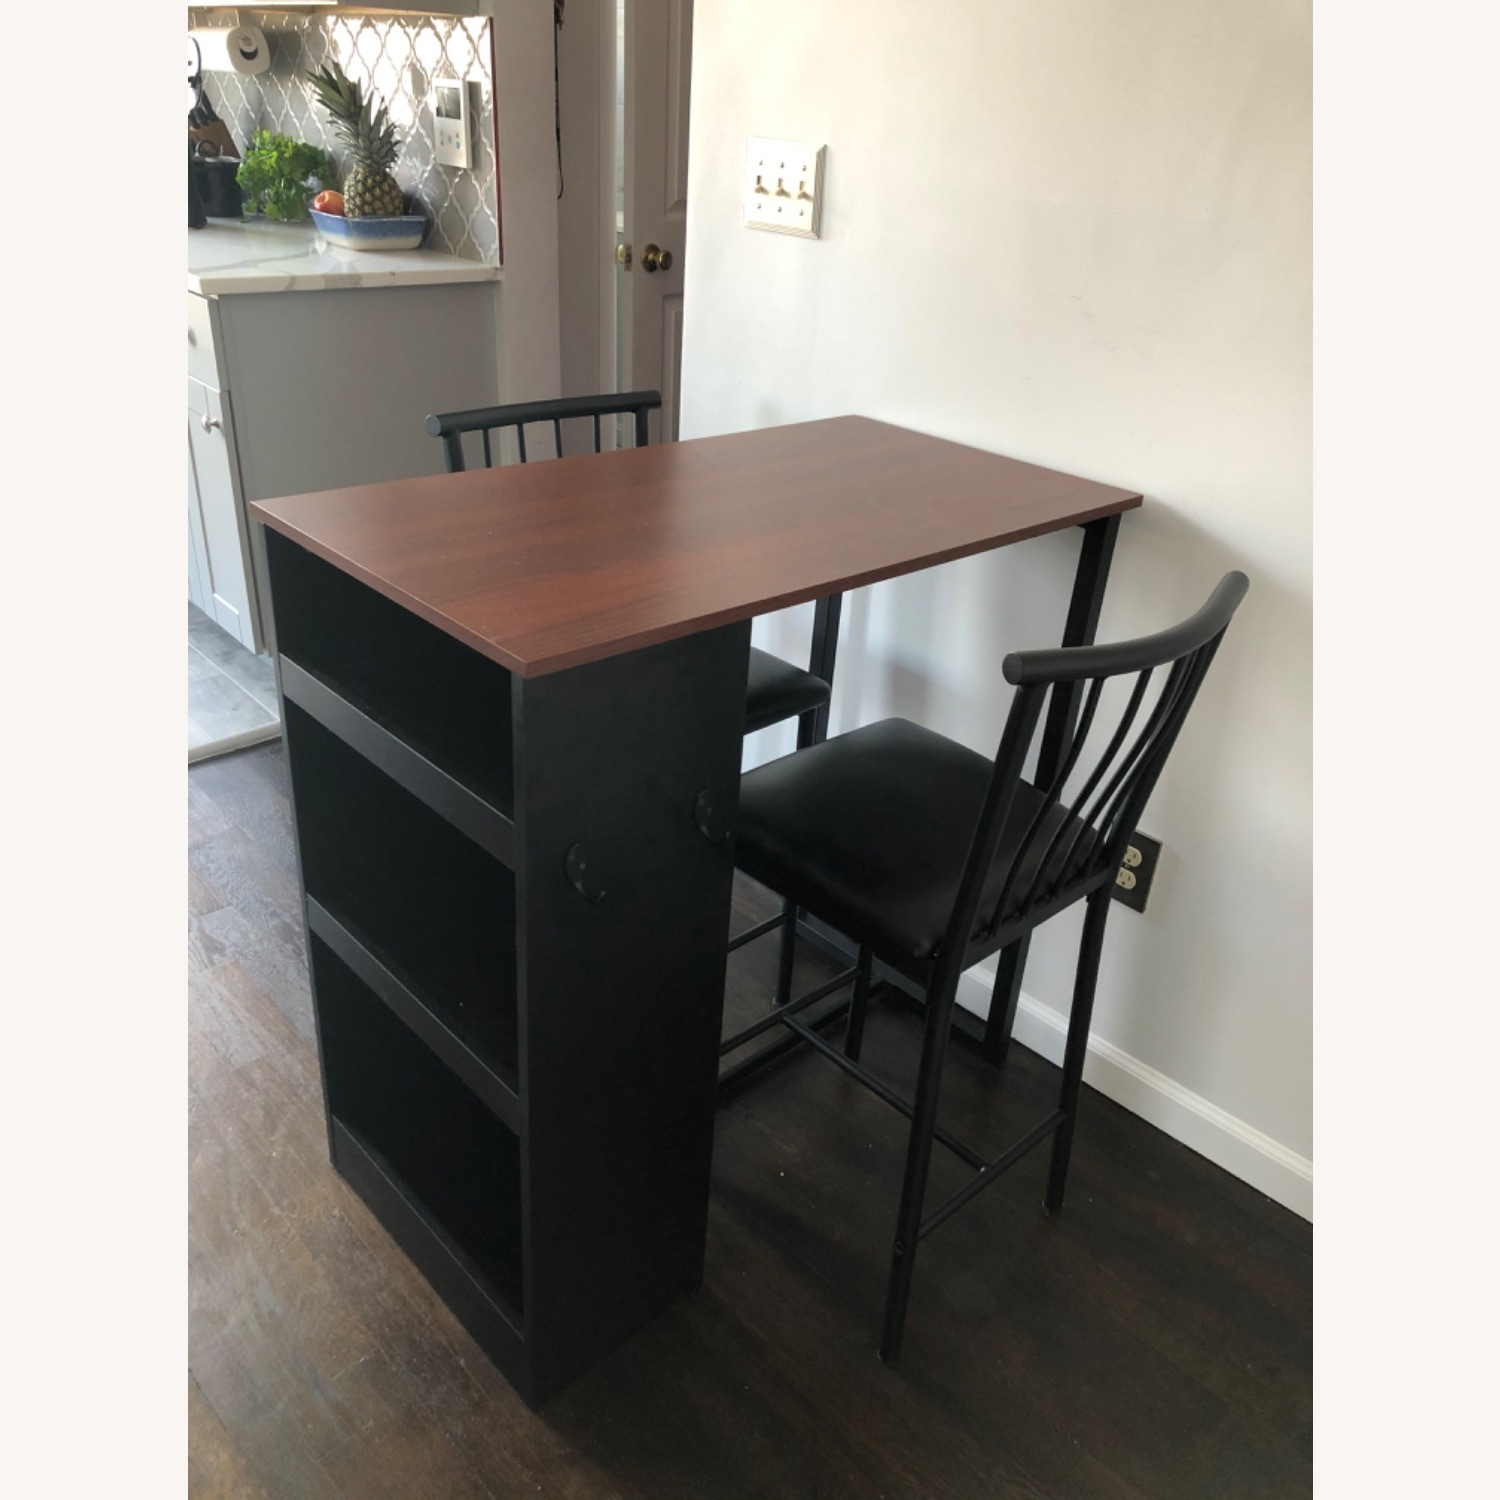 Wayfair Counter Height Table and Stools - image-1